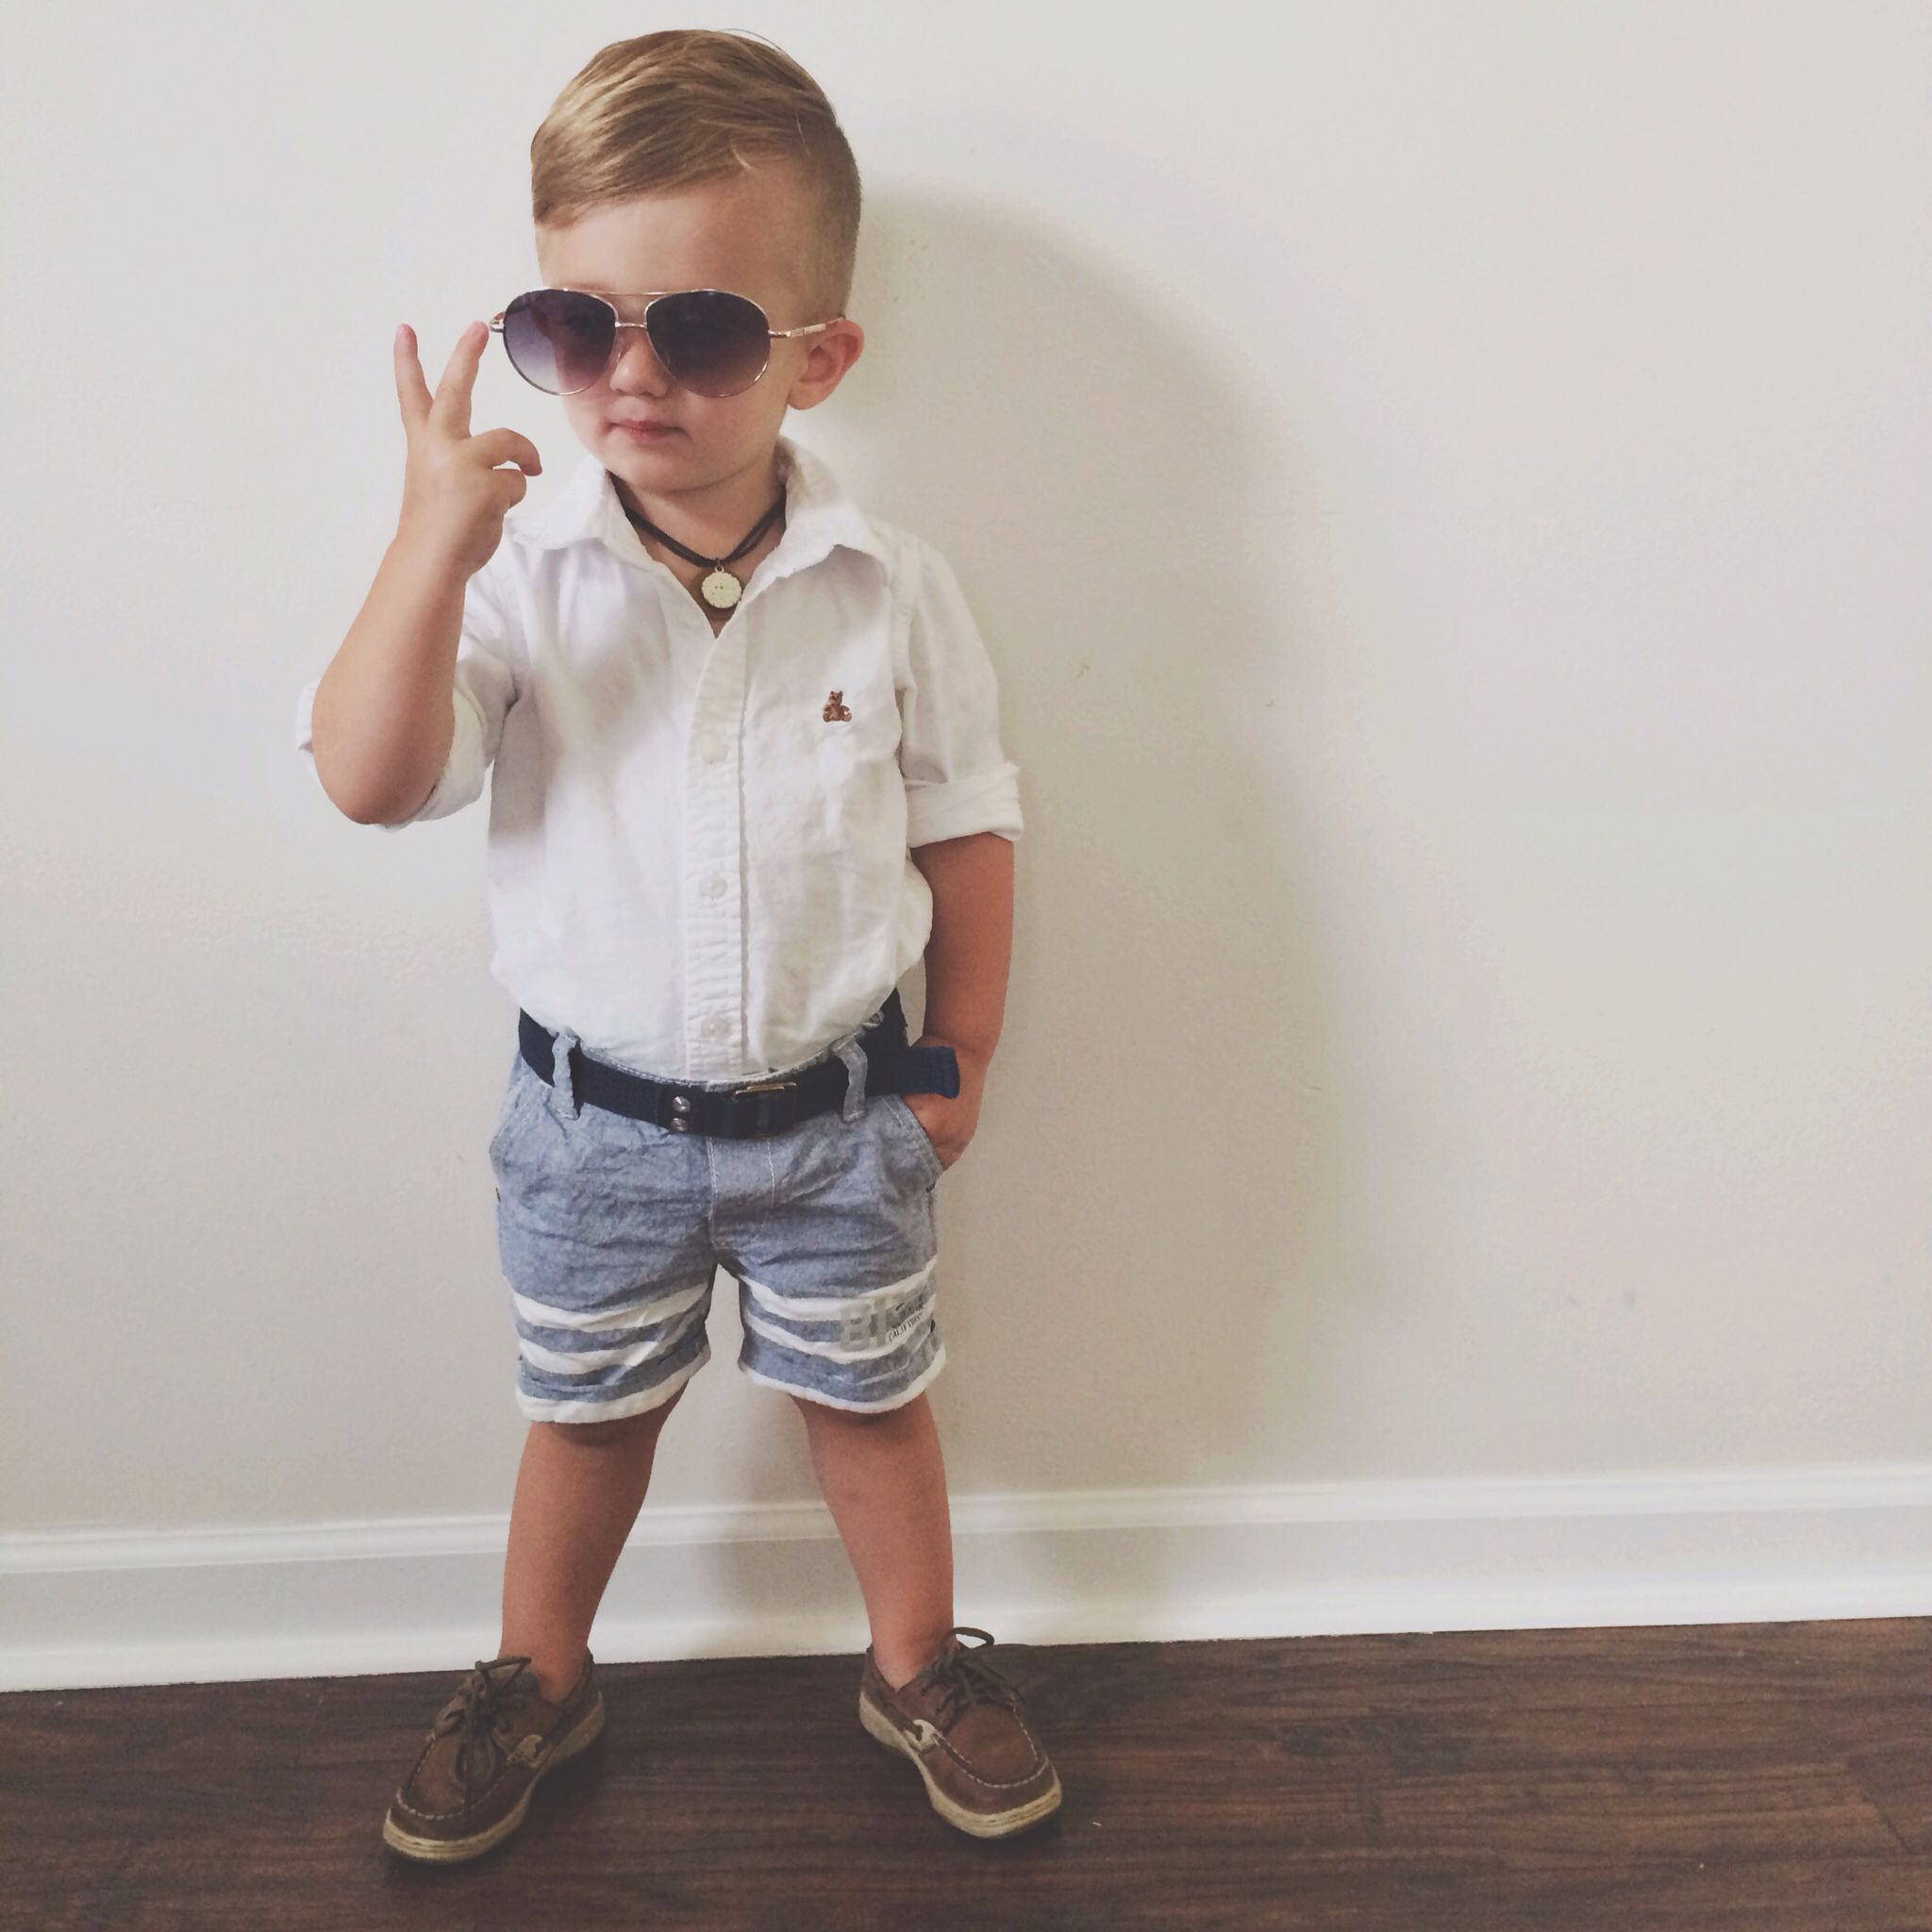 Baby Boy Fashion Via Sarahknuth On Instagram Baby Boy